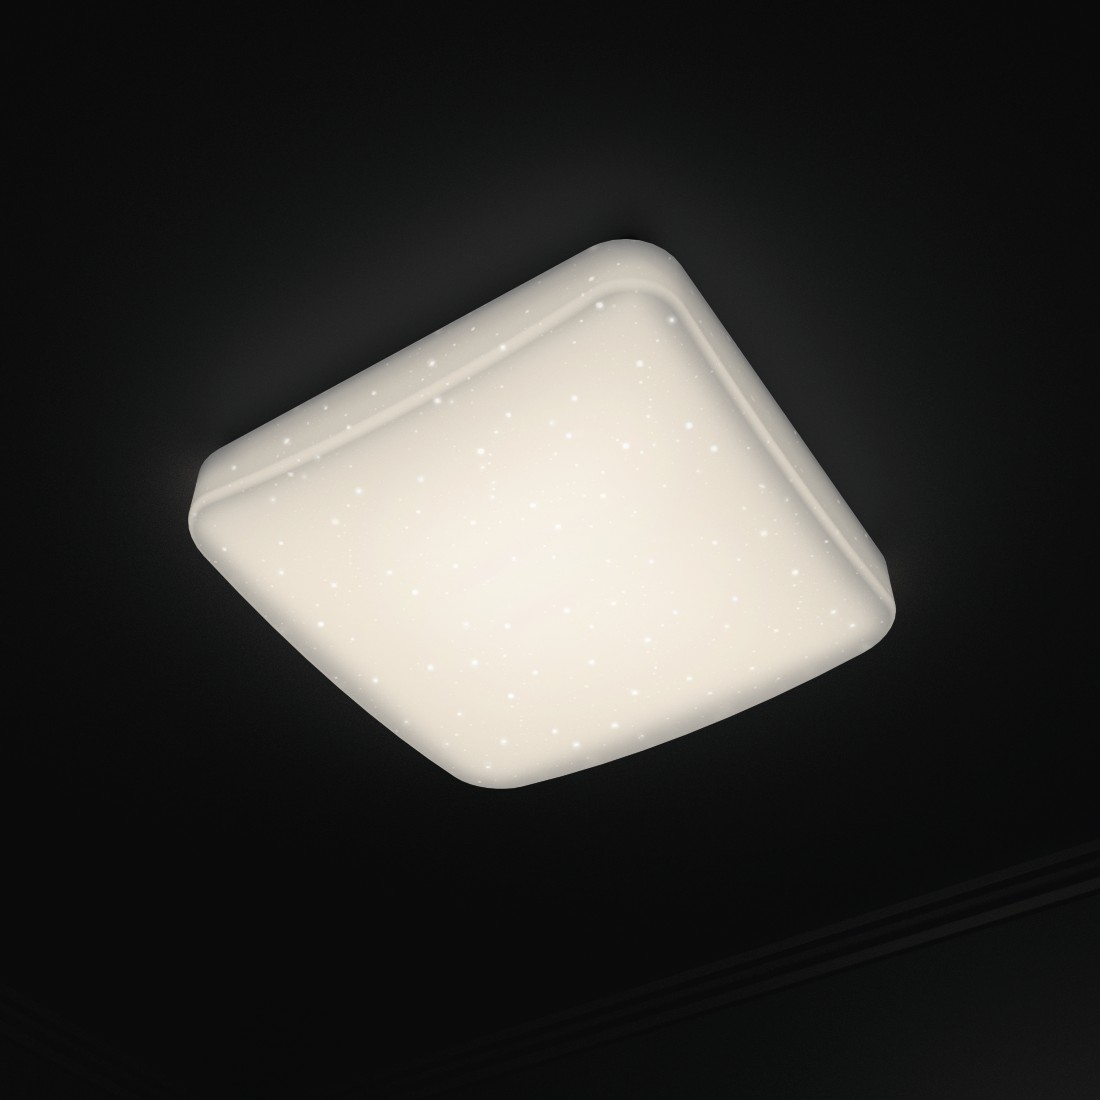 awx4 High-Res Appliance 4 - Hama, WiFi Ceiling Light, Glitter Effect, Square, 27 cm